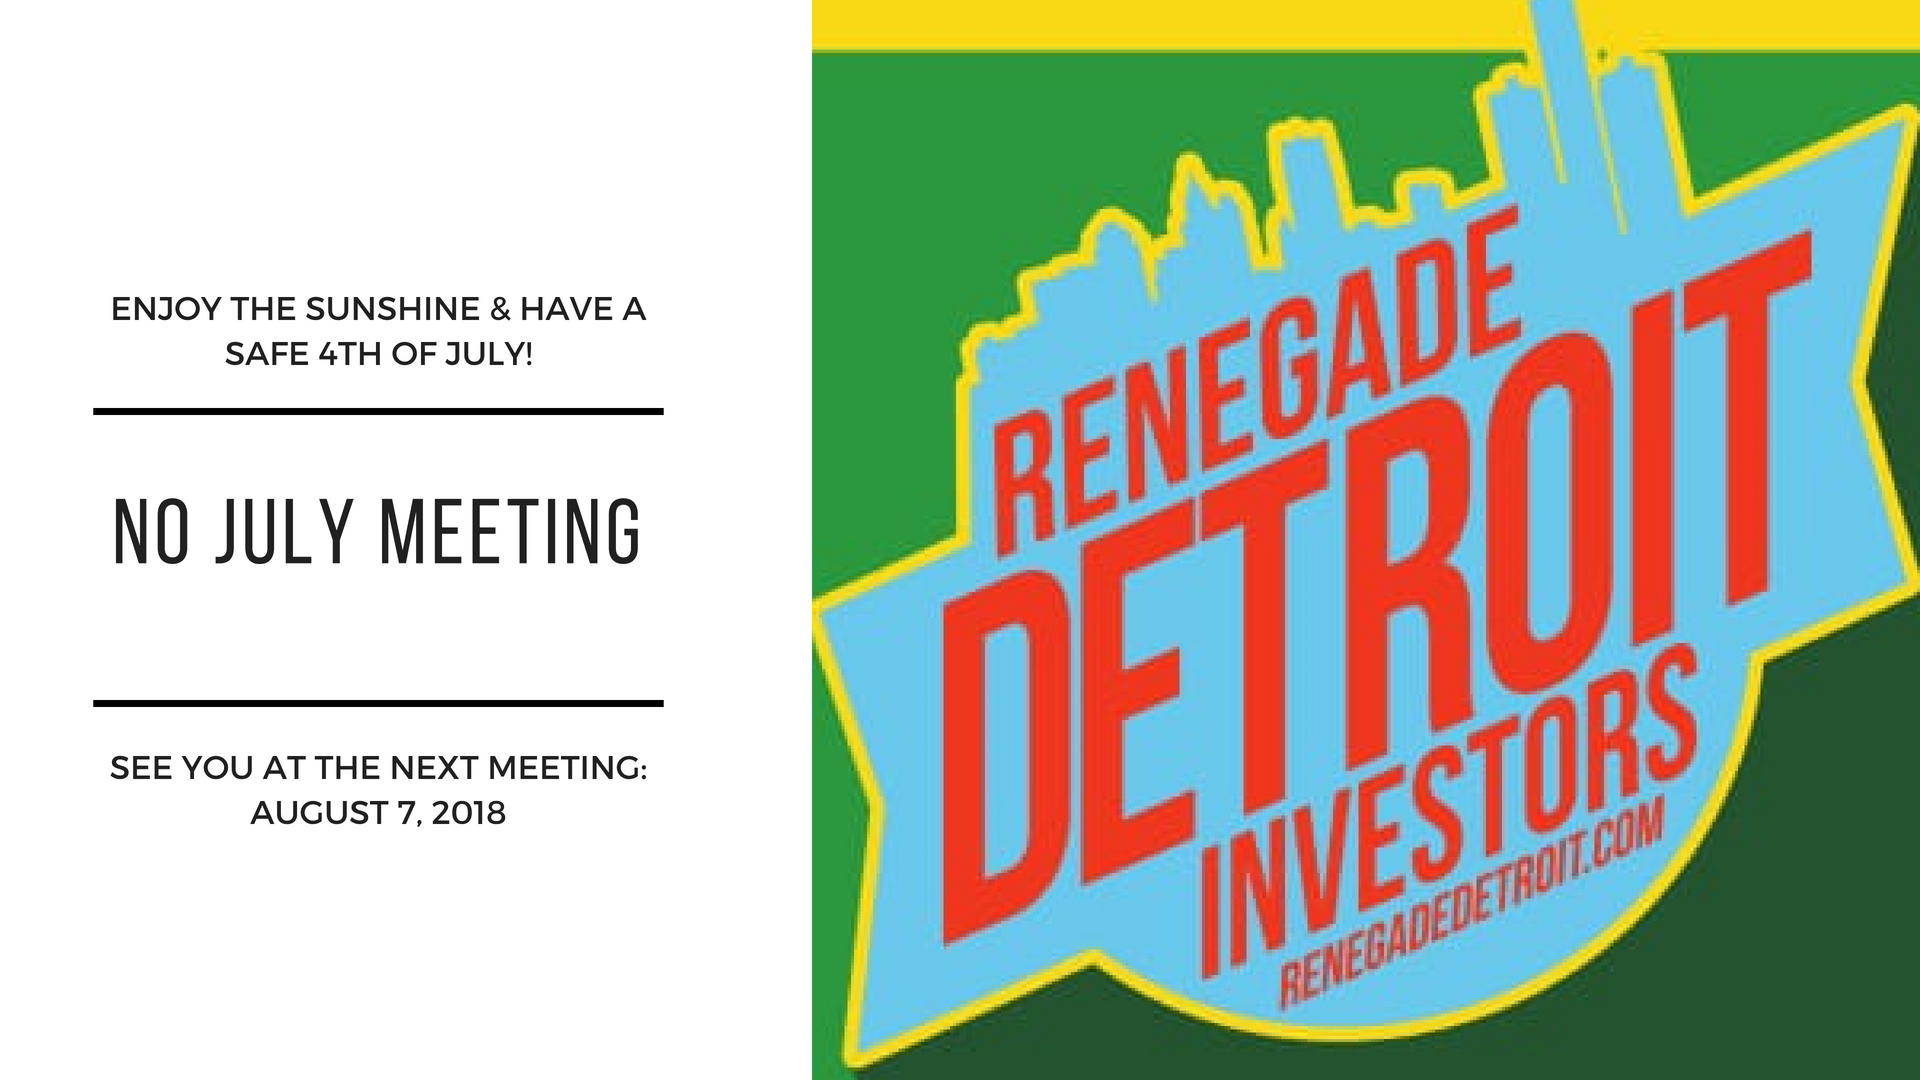 renegade-detroit-meeting